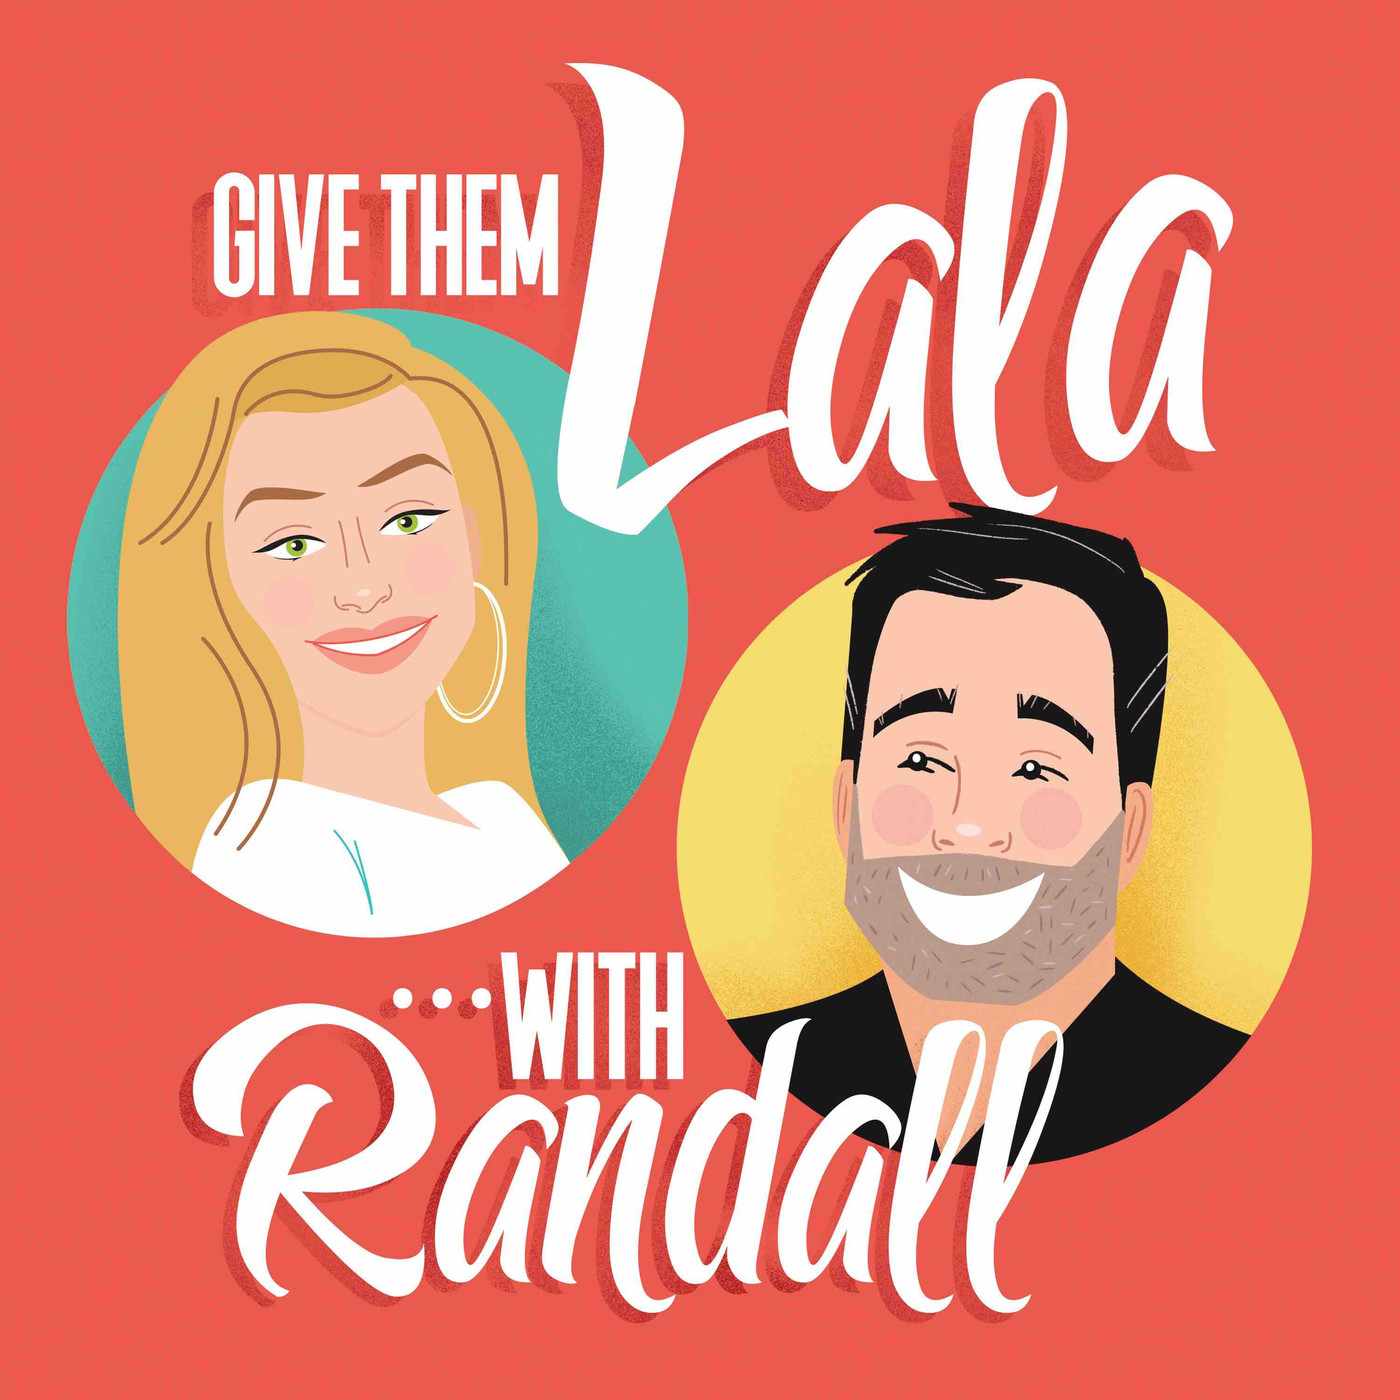 Introducing GIve Them Lala... with Randall